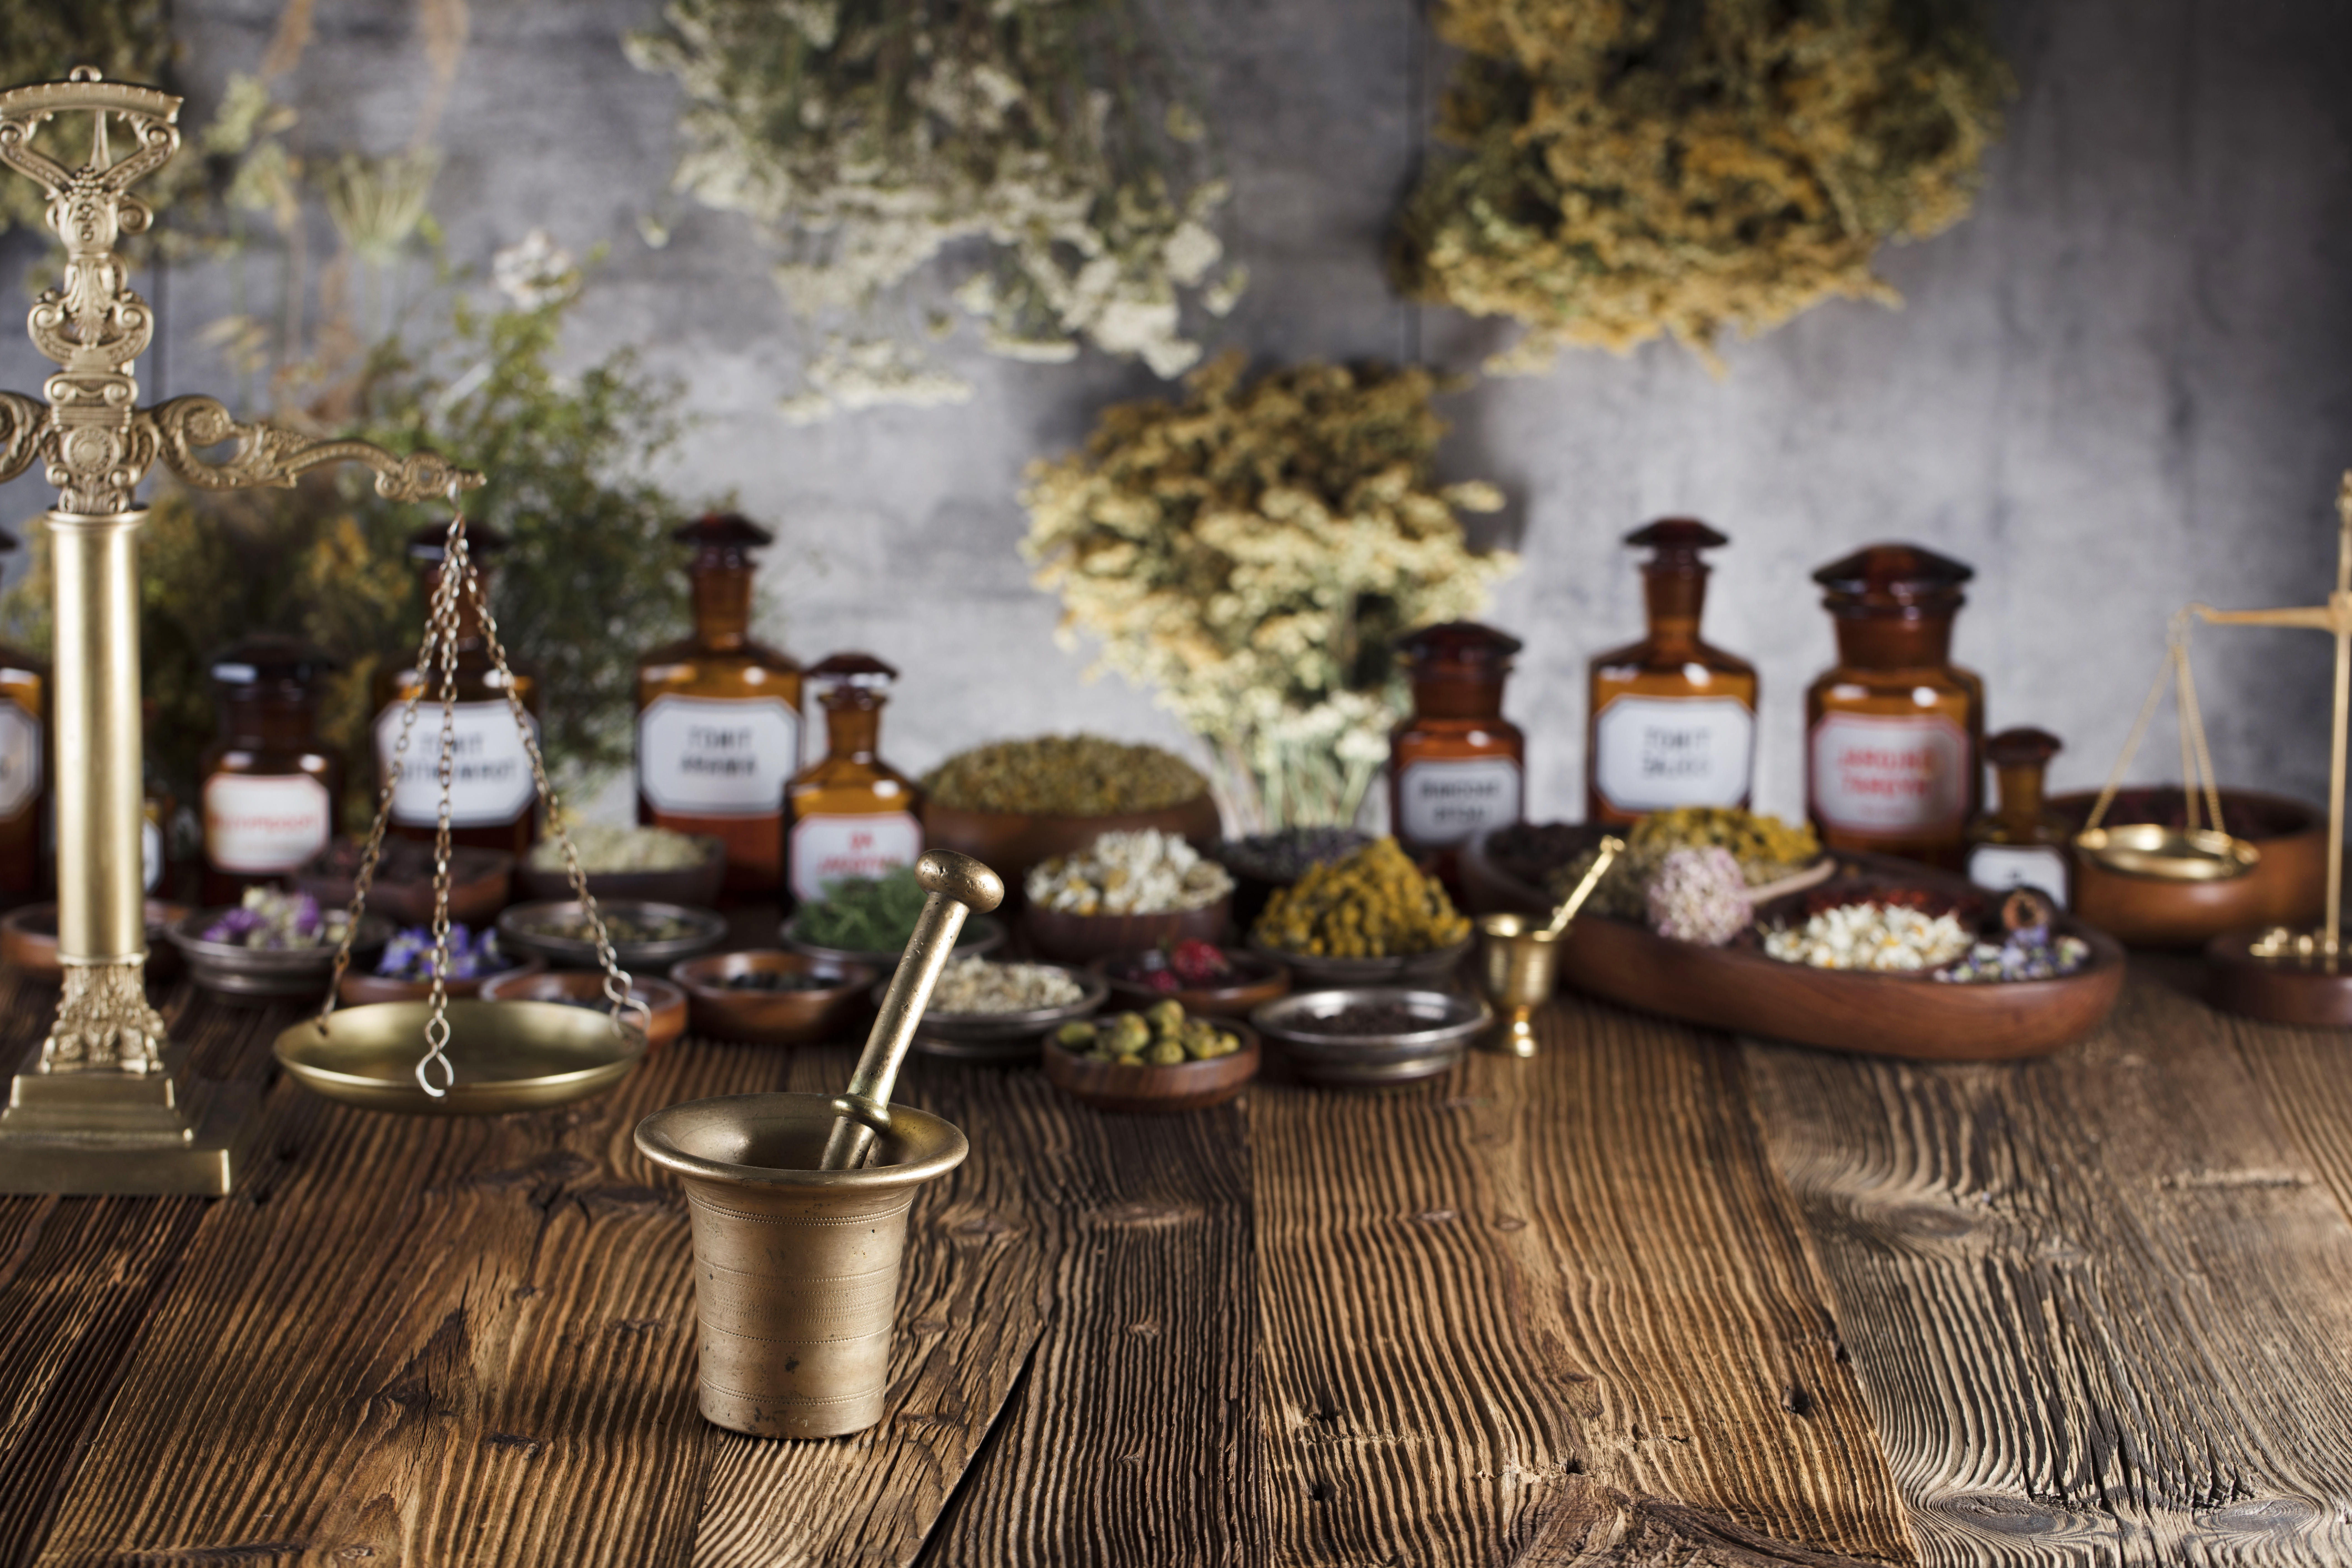 What Is the Average Starting Salary for an Herbalist